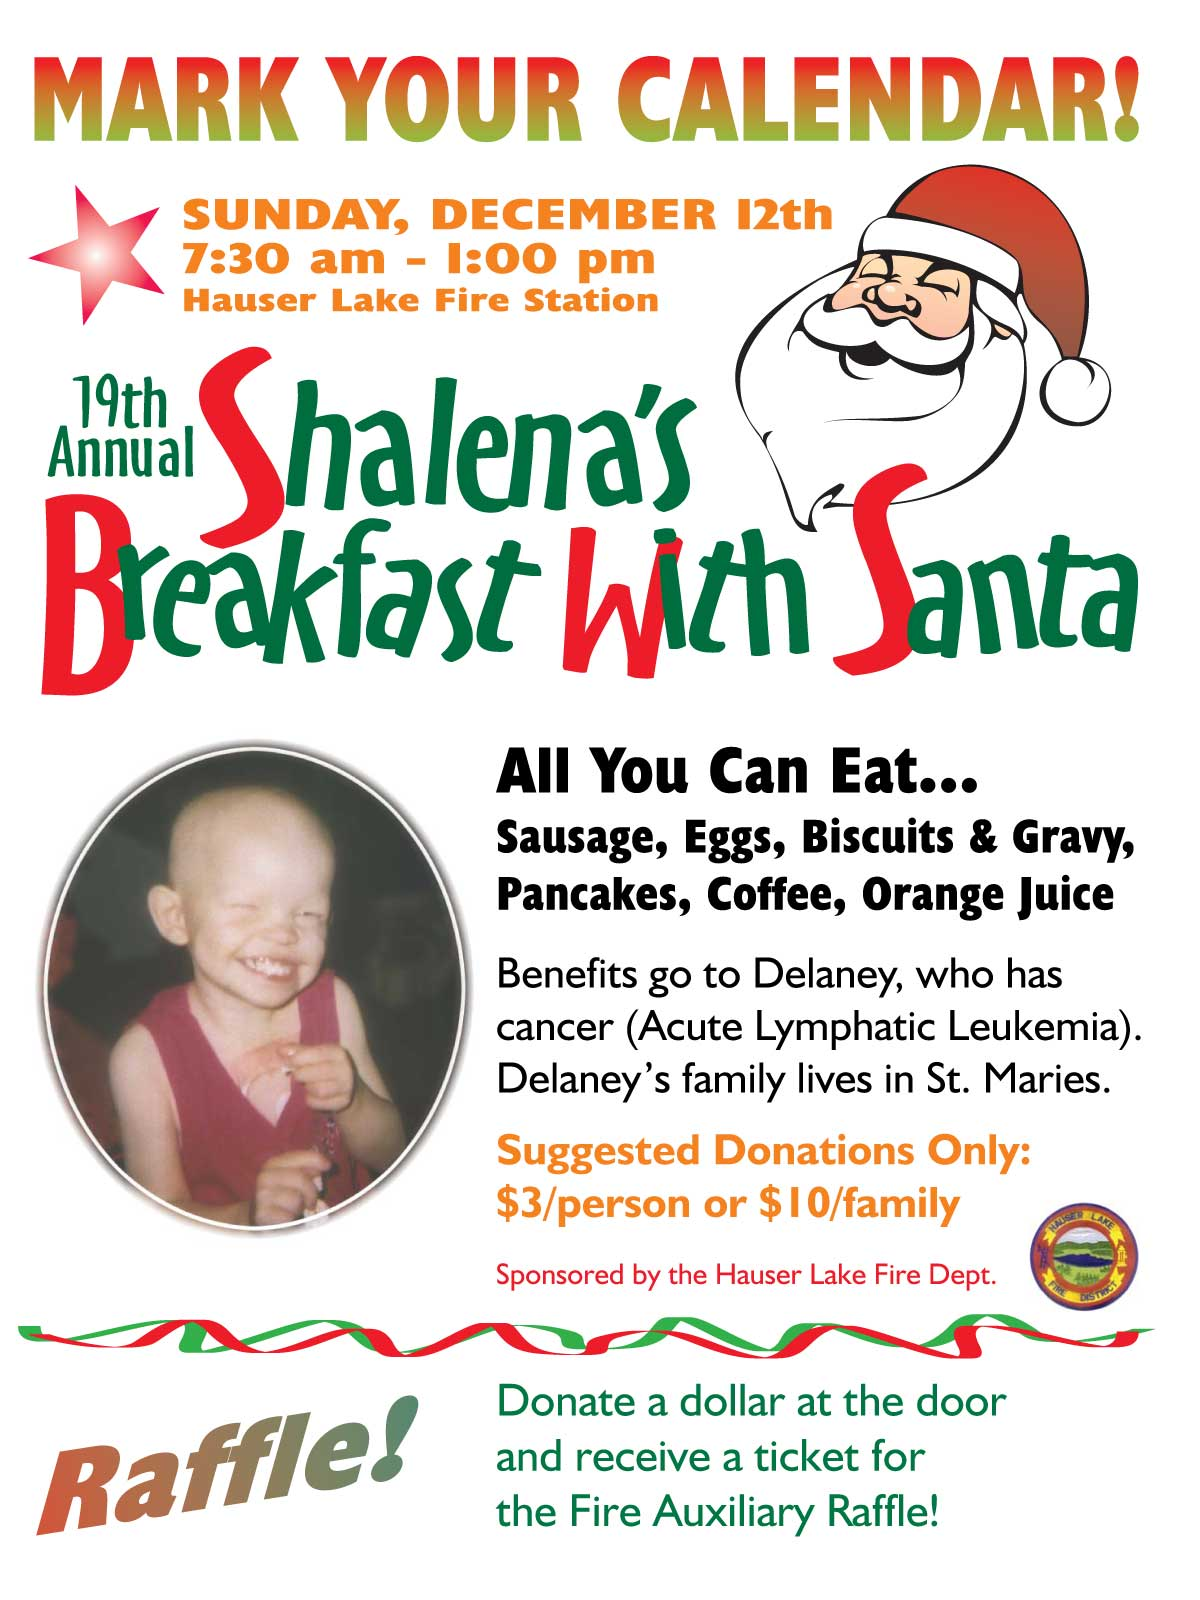 Breakfast with Santa 2004 Delaney